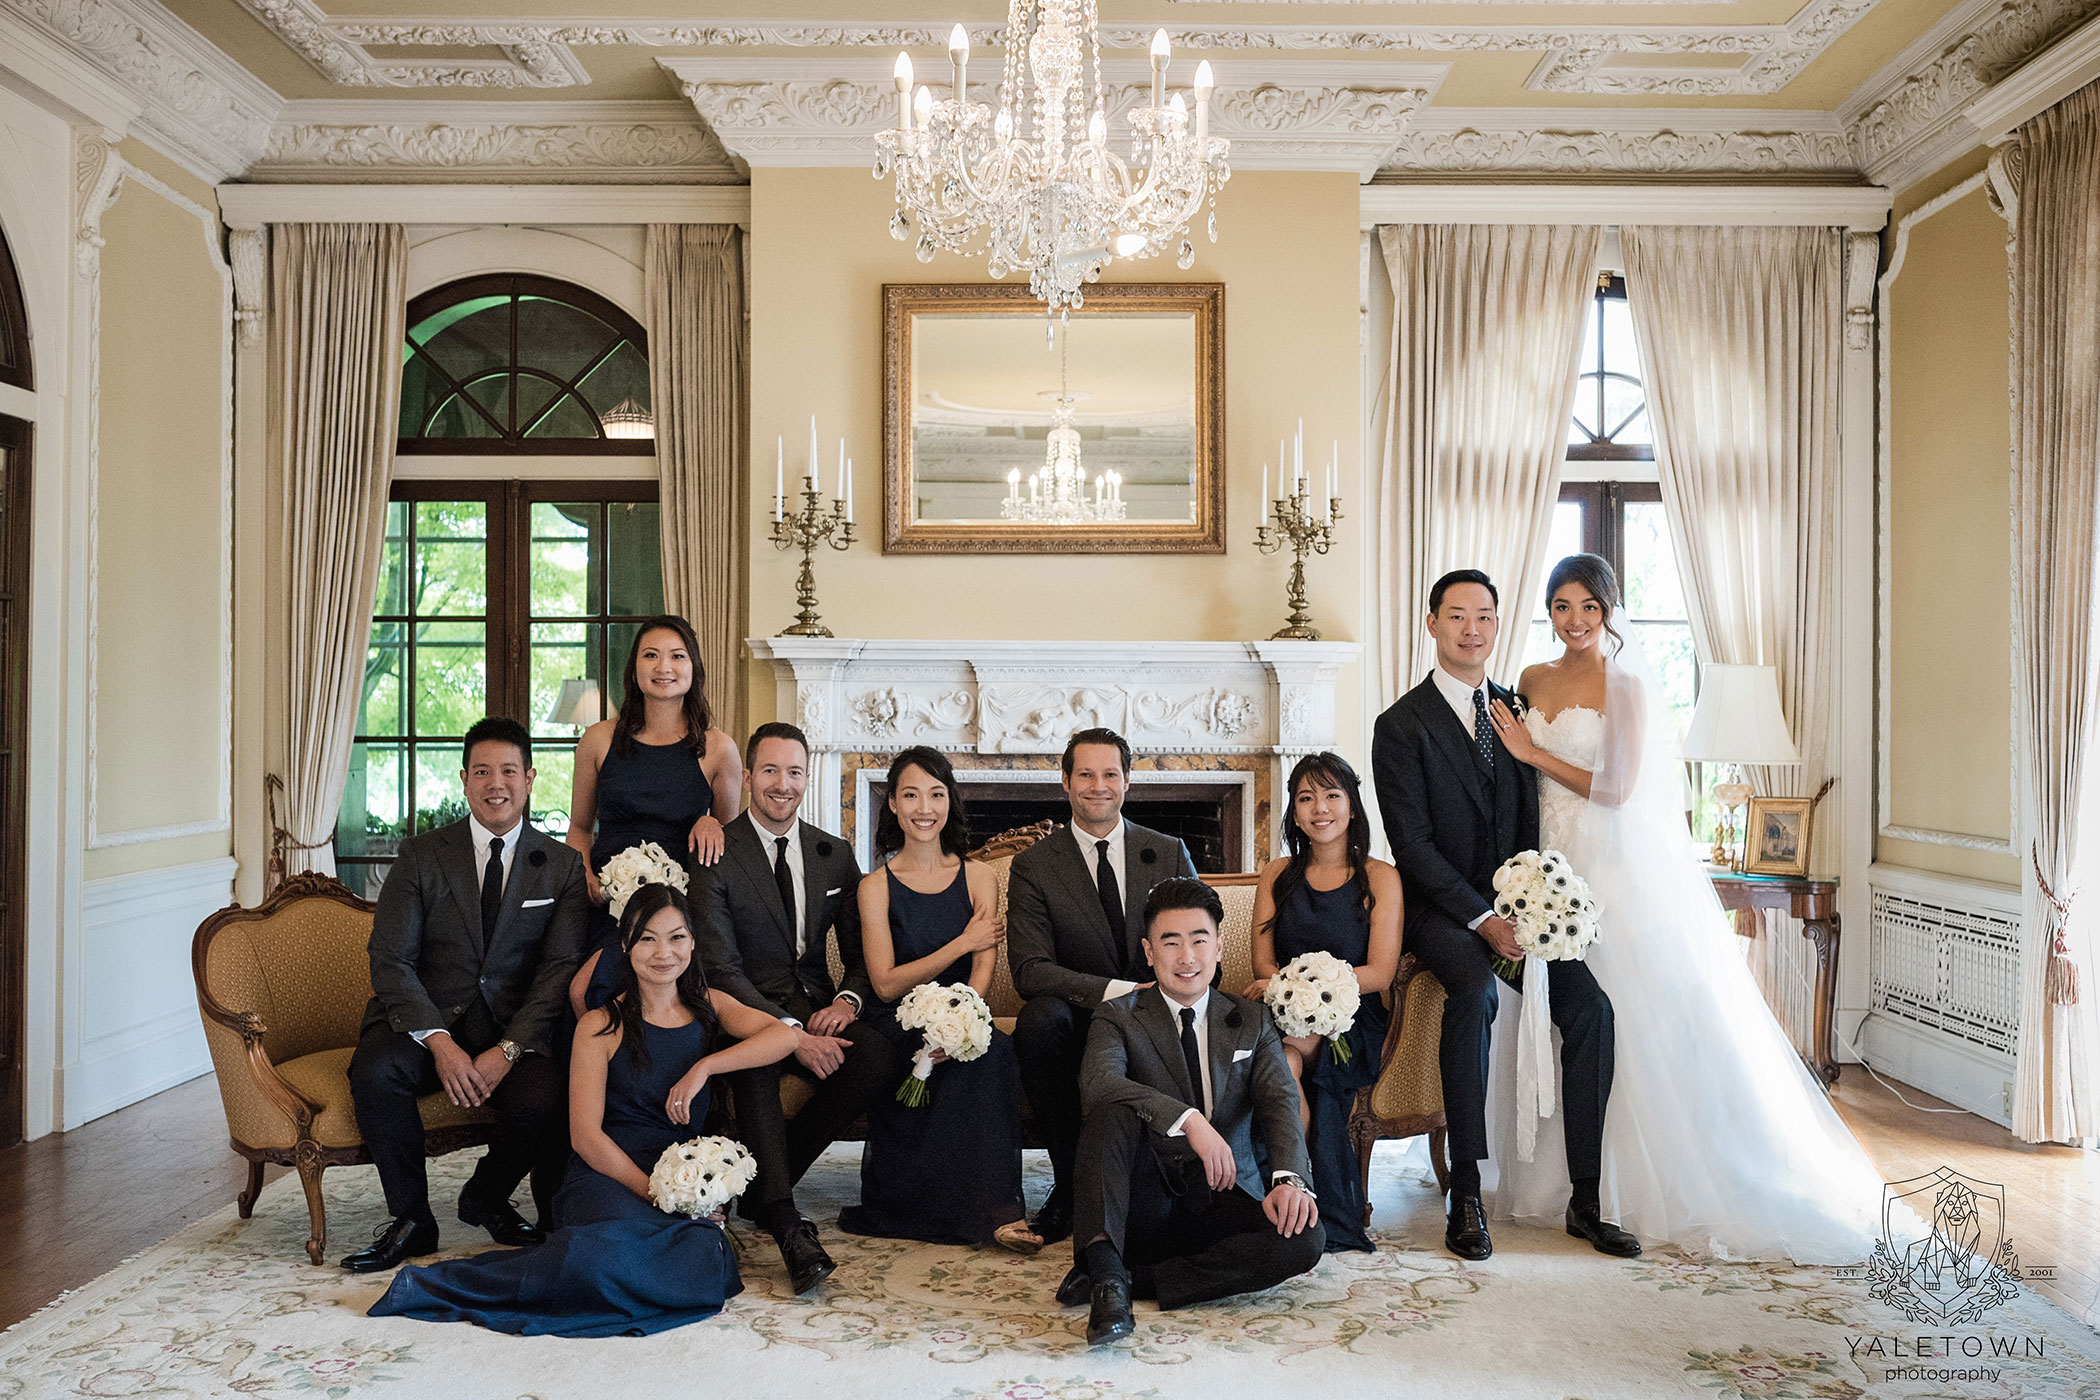 Hycroft-Manor-Rosewood-Hotel-Georgia-Vancouver-Wedding-Yaletown-Photography-photo-90.jpg